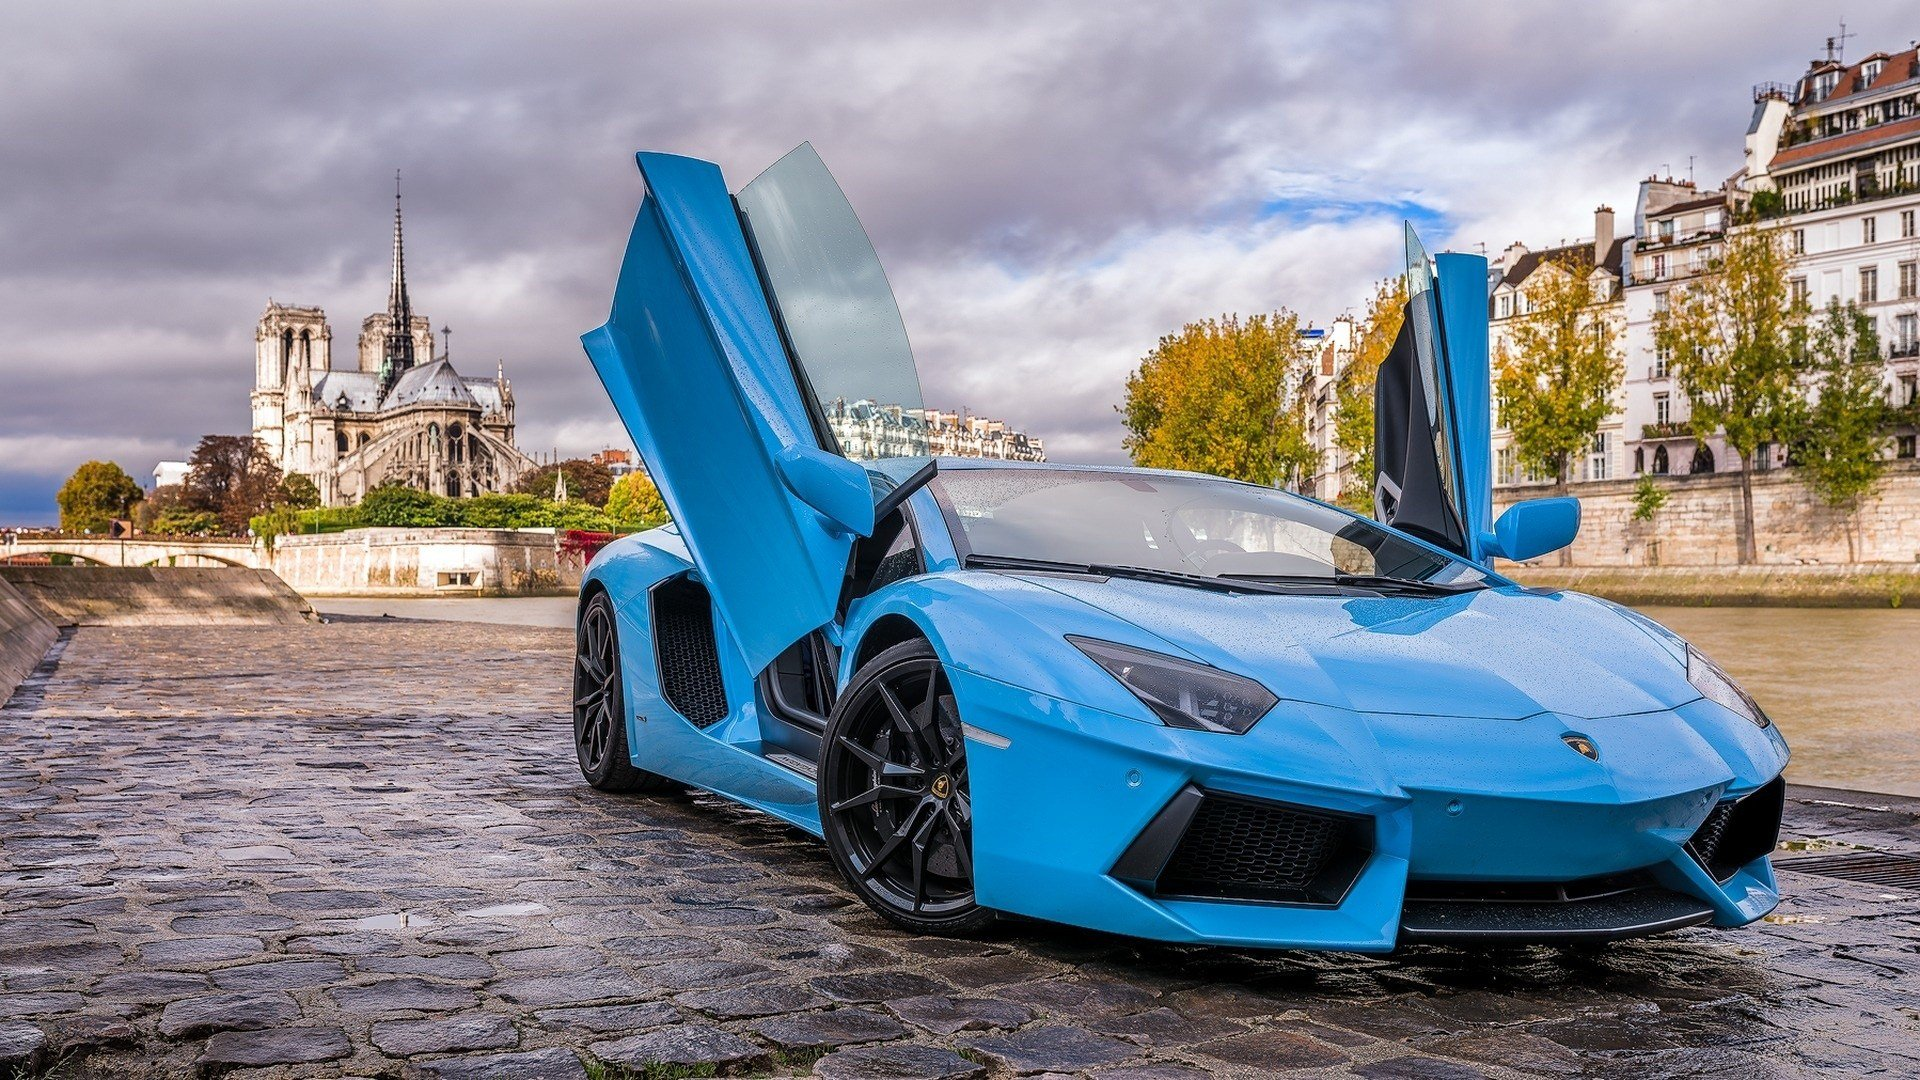 New Car Lamborghini Aventador Blue Cars Wallpapers Hd On This Month